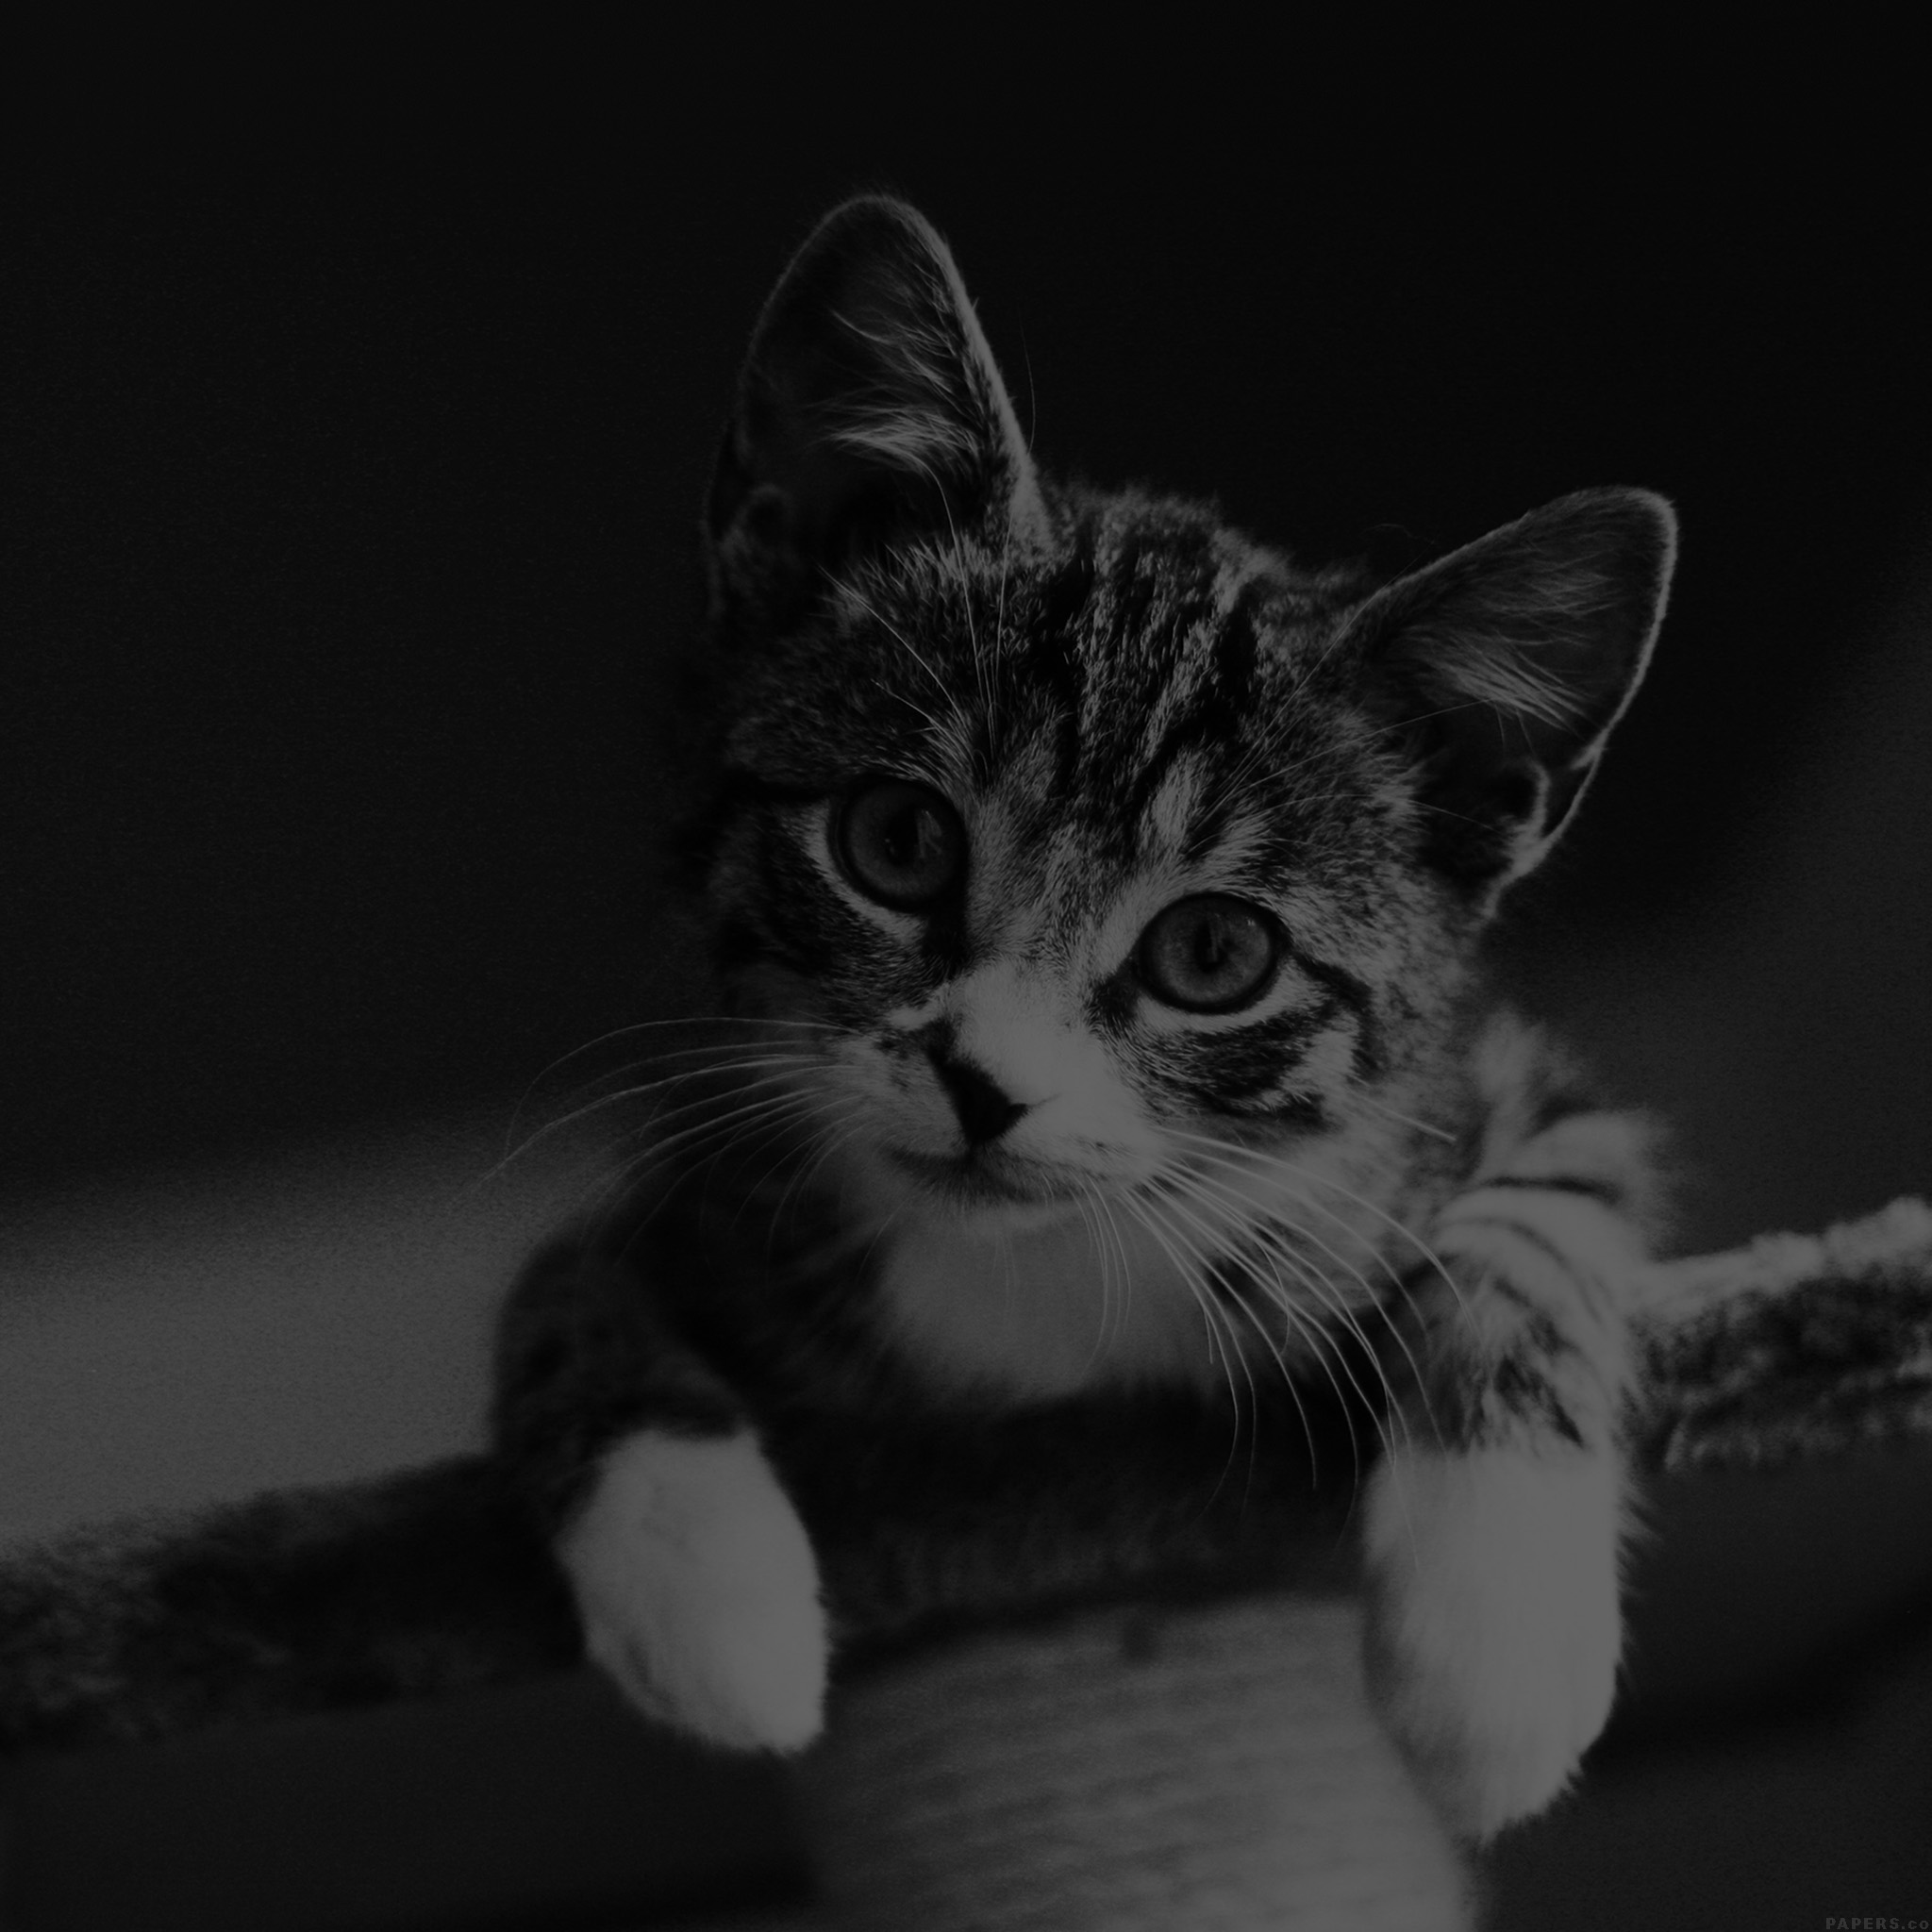 Cat Wallpapers For Iphone: WALLPAPERS